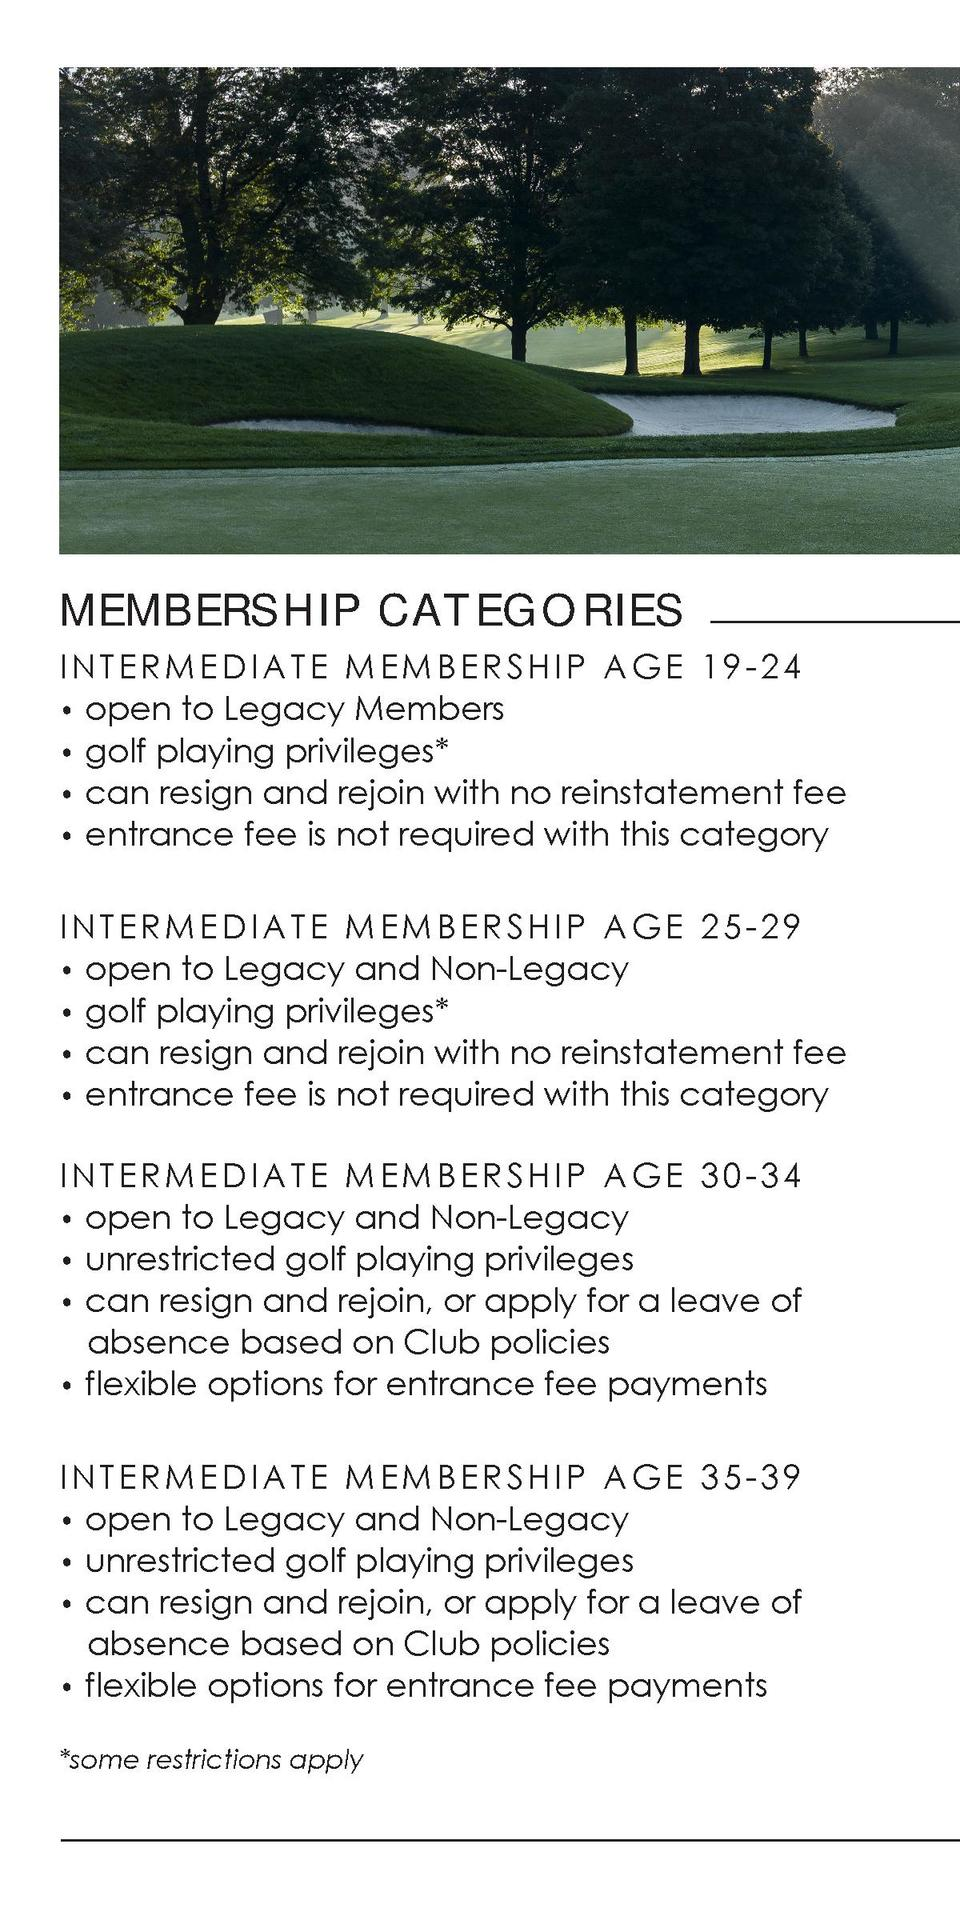 MEM B E RSH IP C A T E G O R I E S INTERMEDIATE MEMBERSHIP AGE 19-24     open to Legacy Members     golf playing privilege...